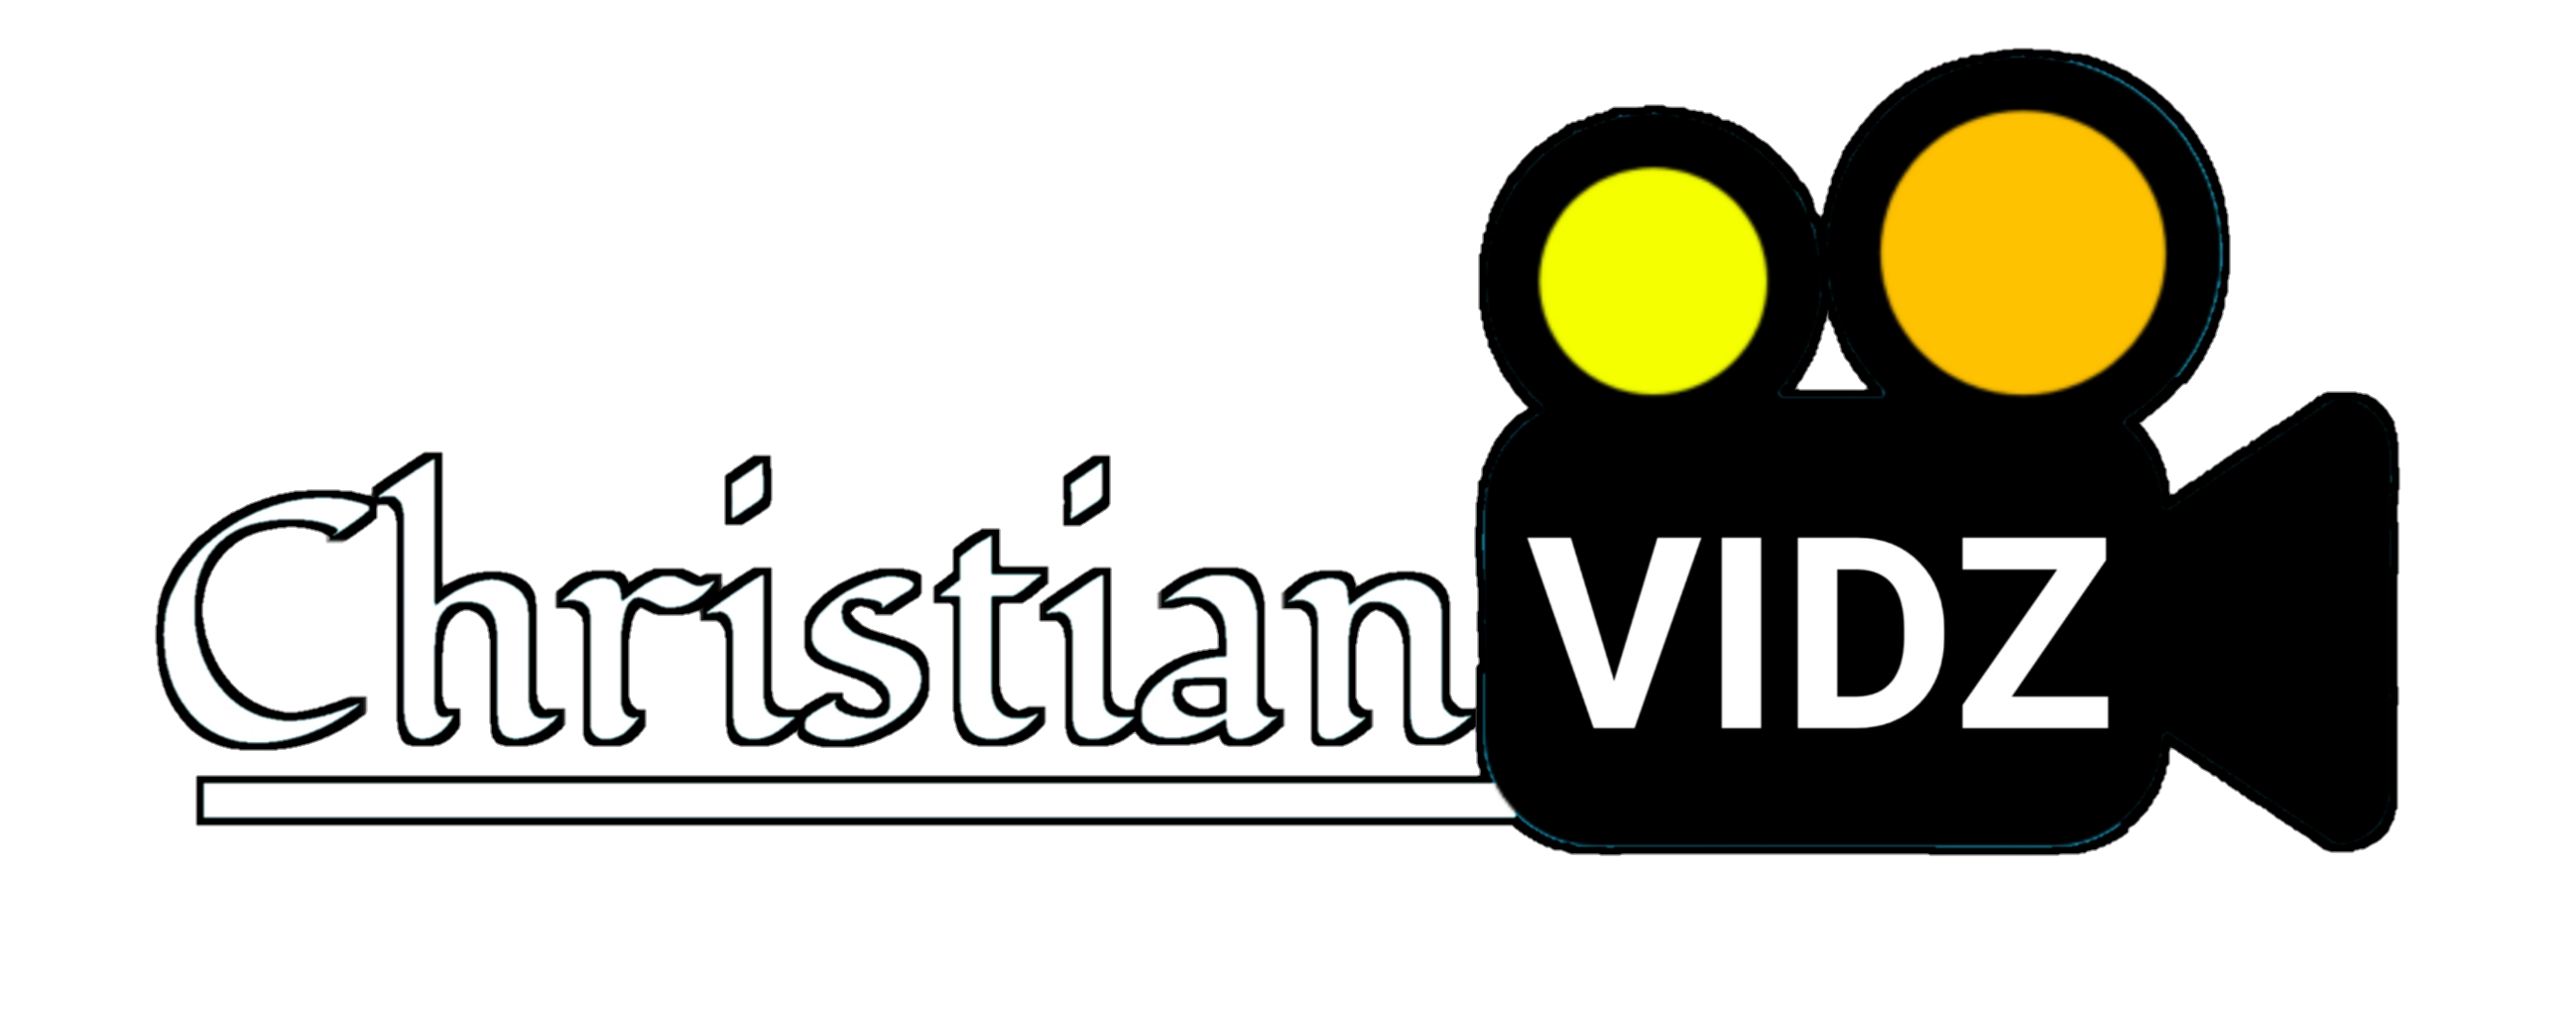 Christianity Today | Christian Audios | Christian Vidz